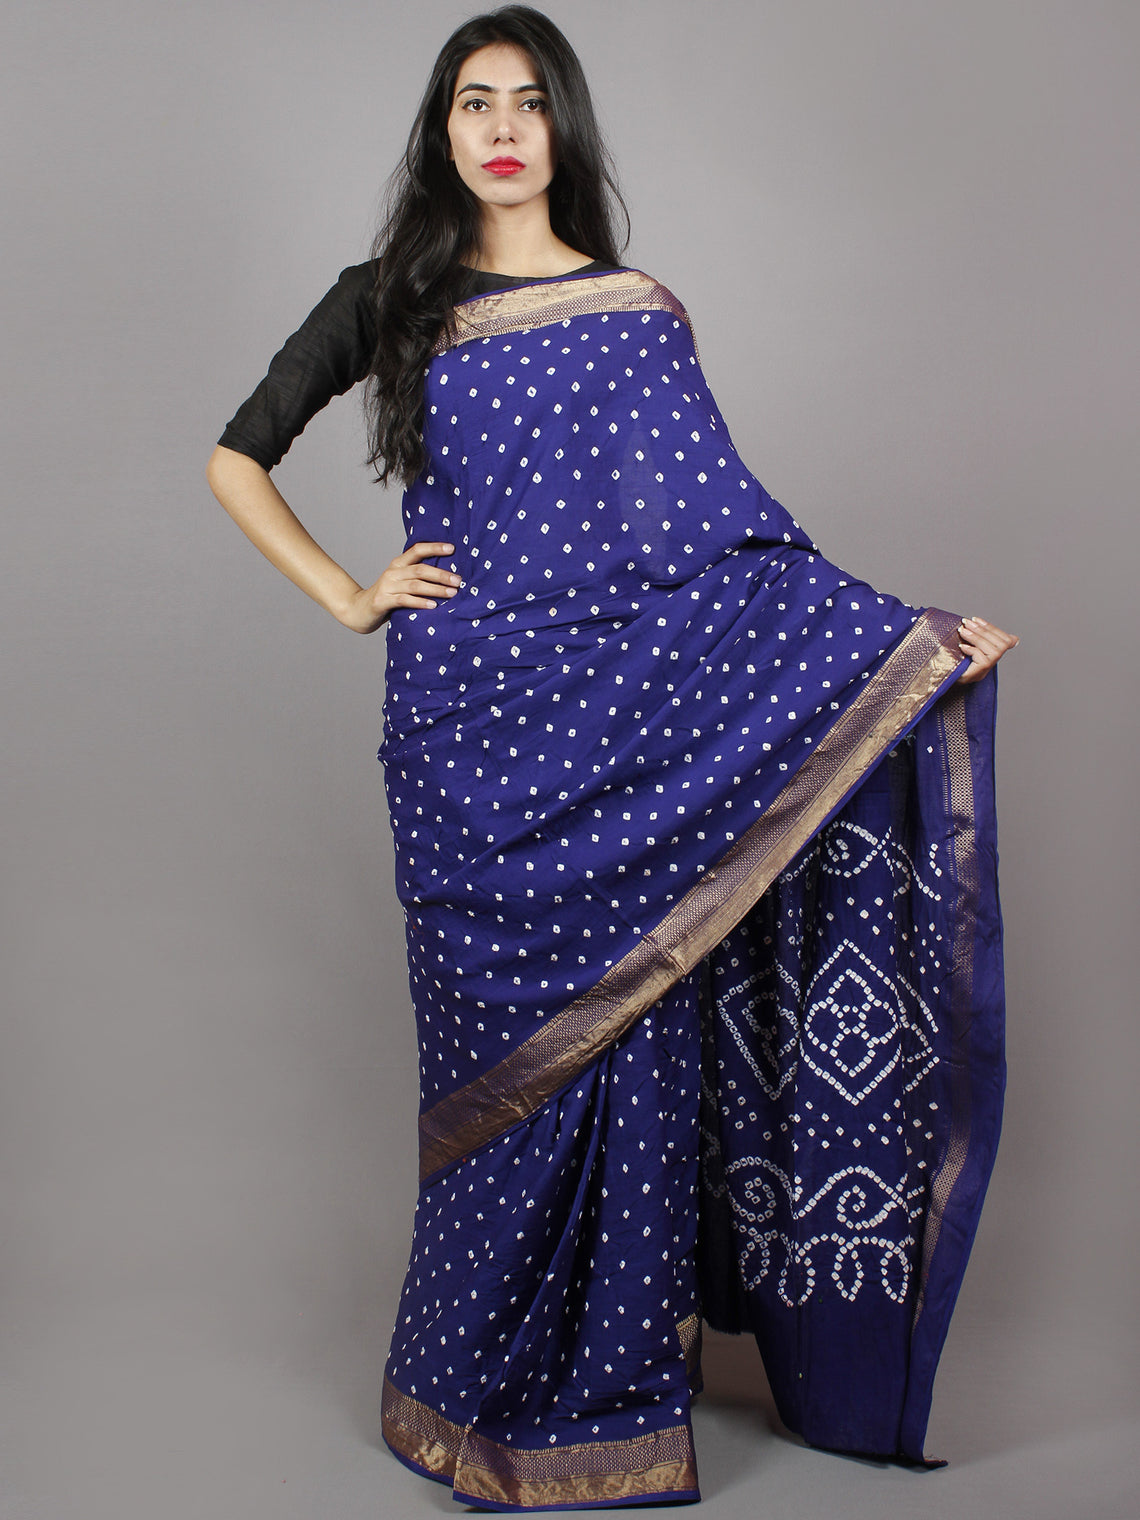 Admiral Blue White Hand Tie & Dye Bandhej Glace Cotton Saree With Resham Border - S031701327